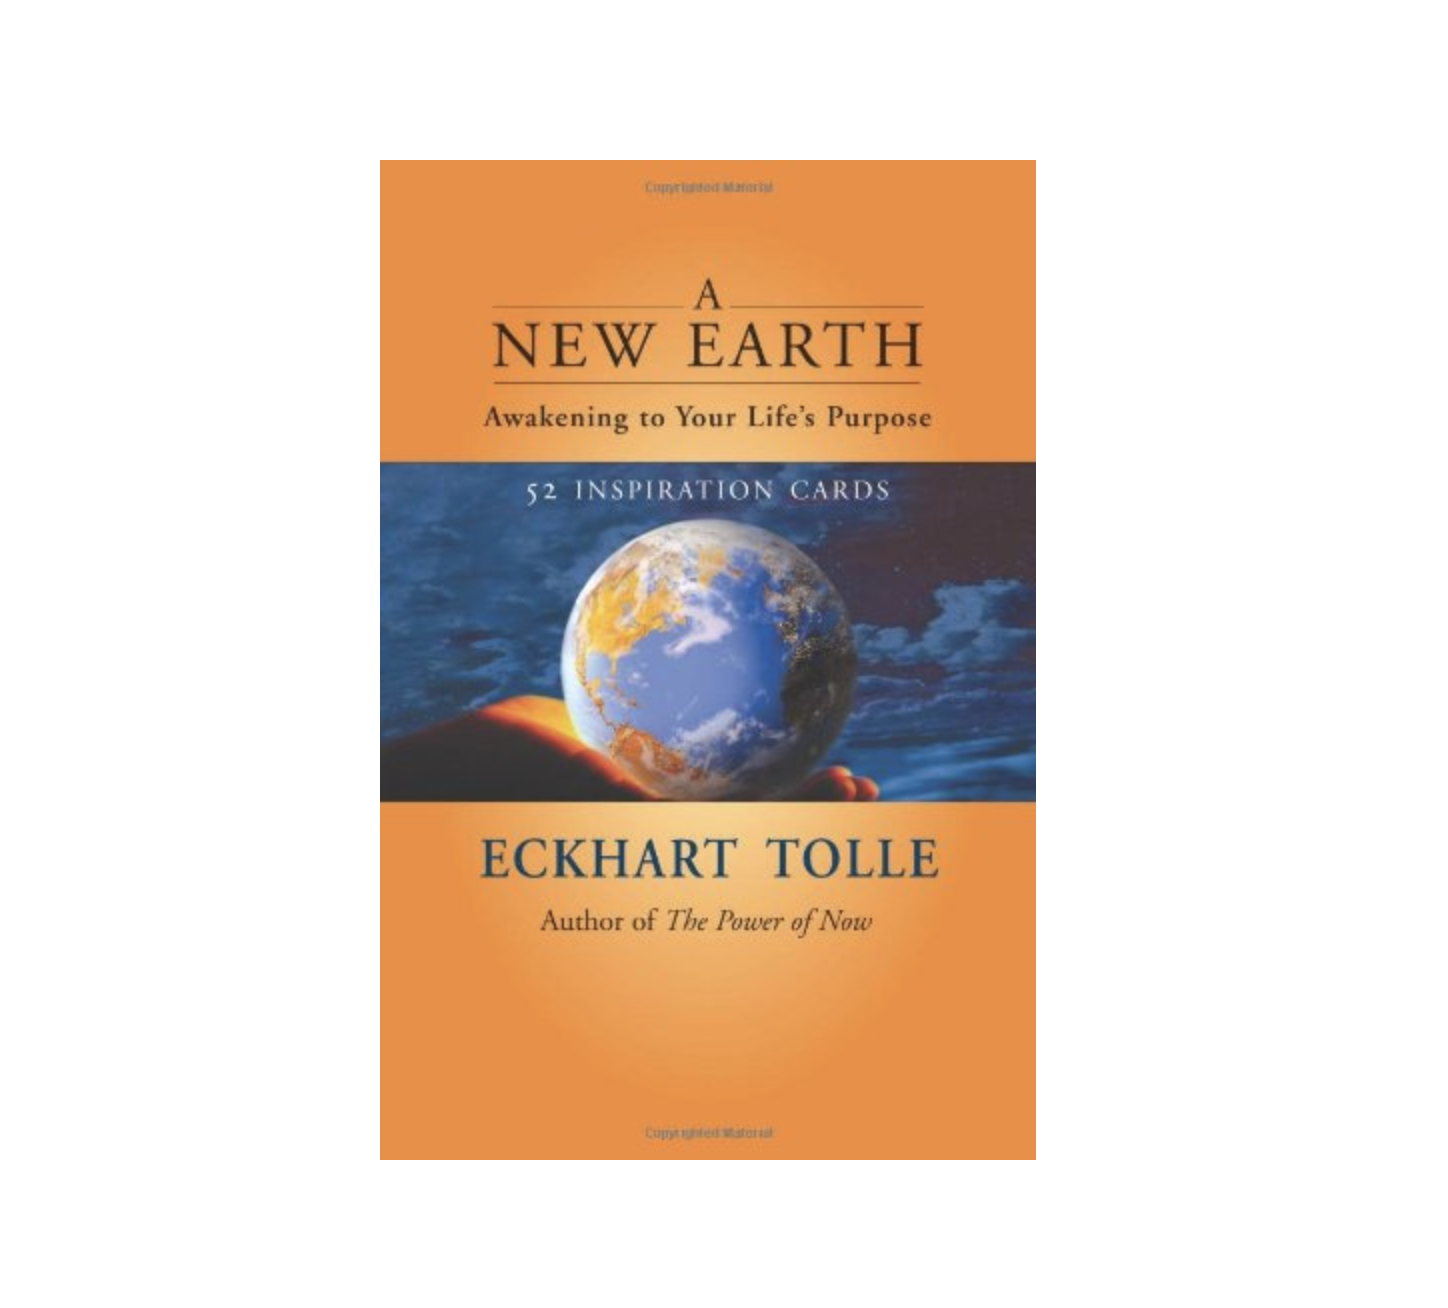 a new earth book